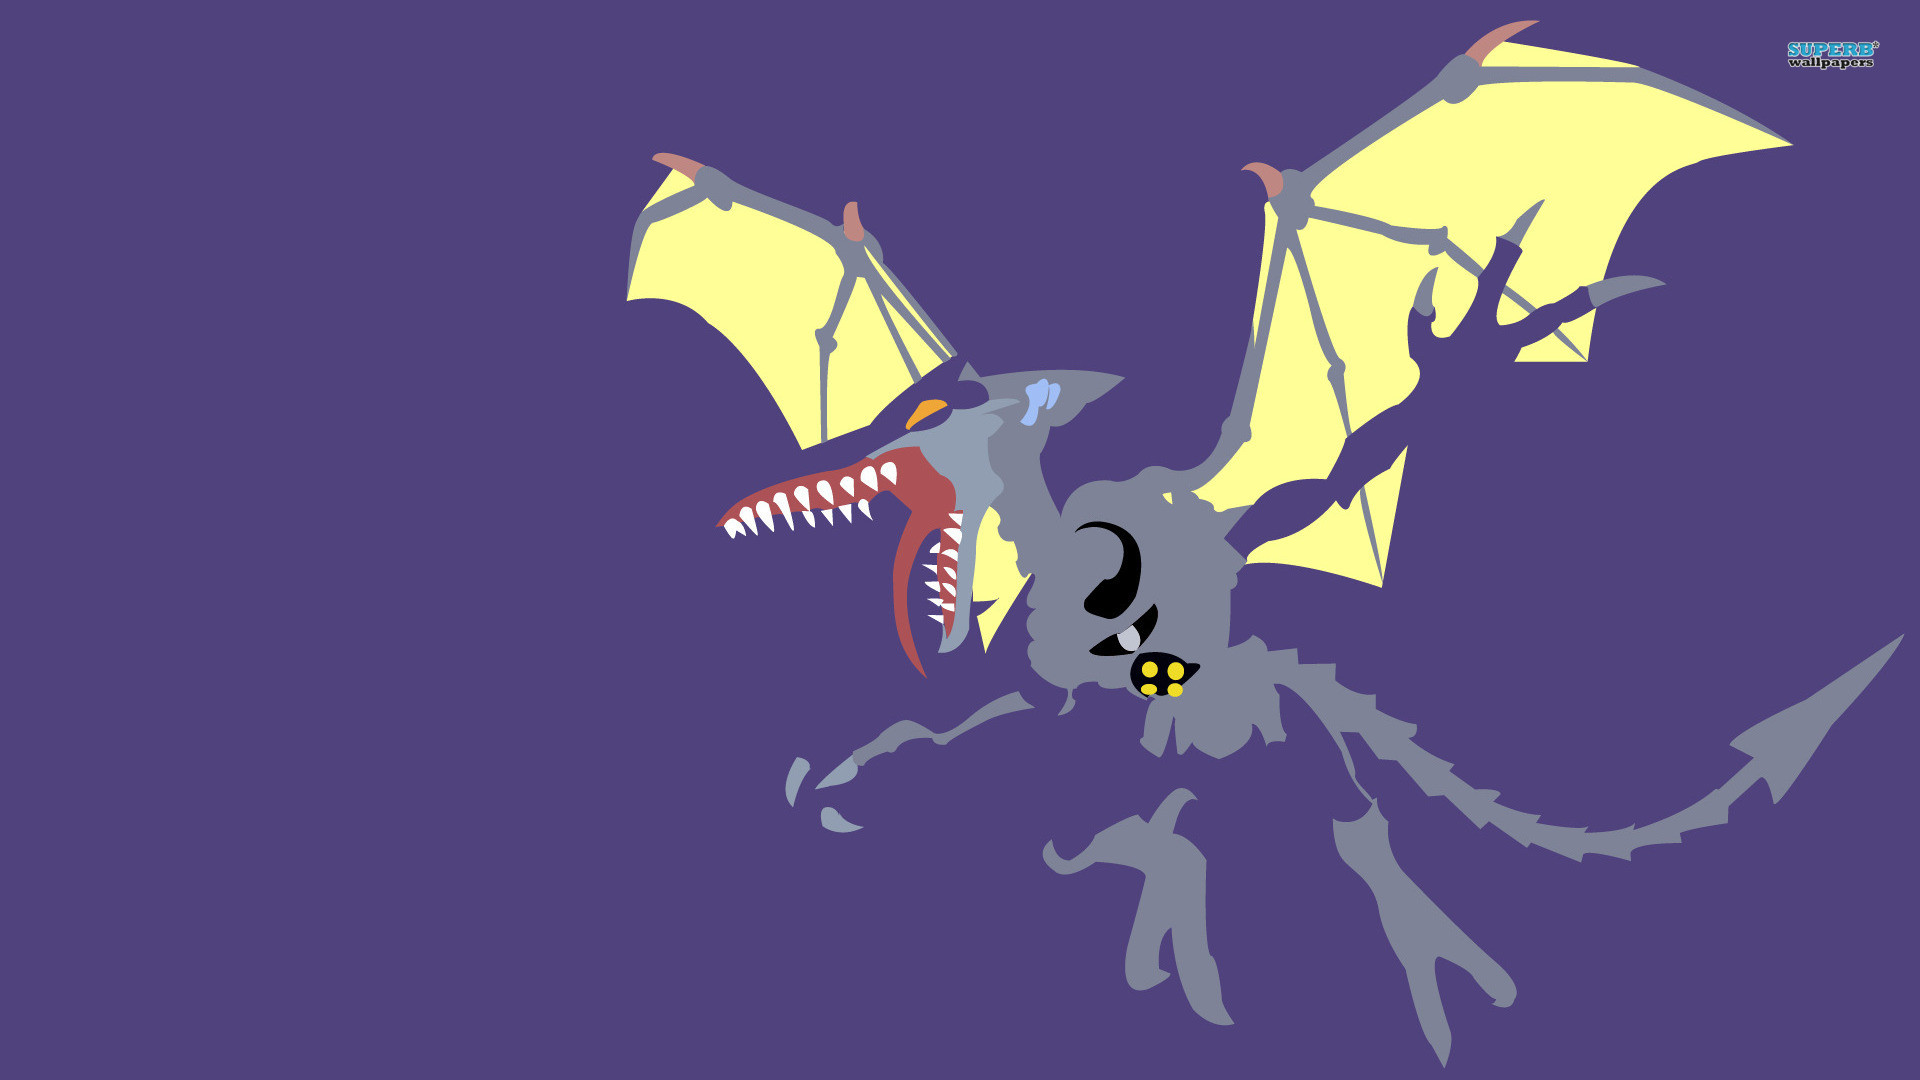 1920x1080 Ridley images Ridley HD wallpaper and background photos